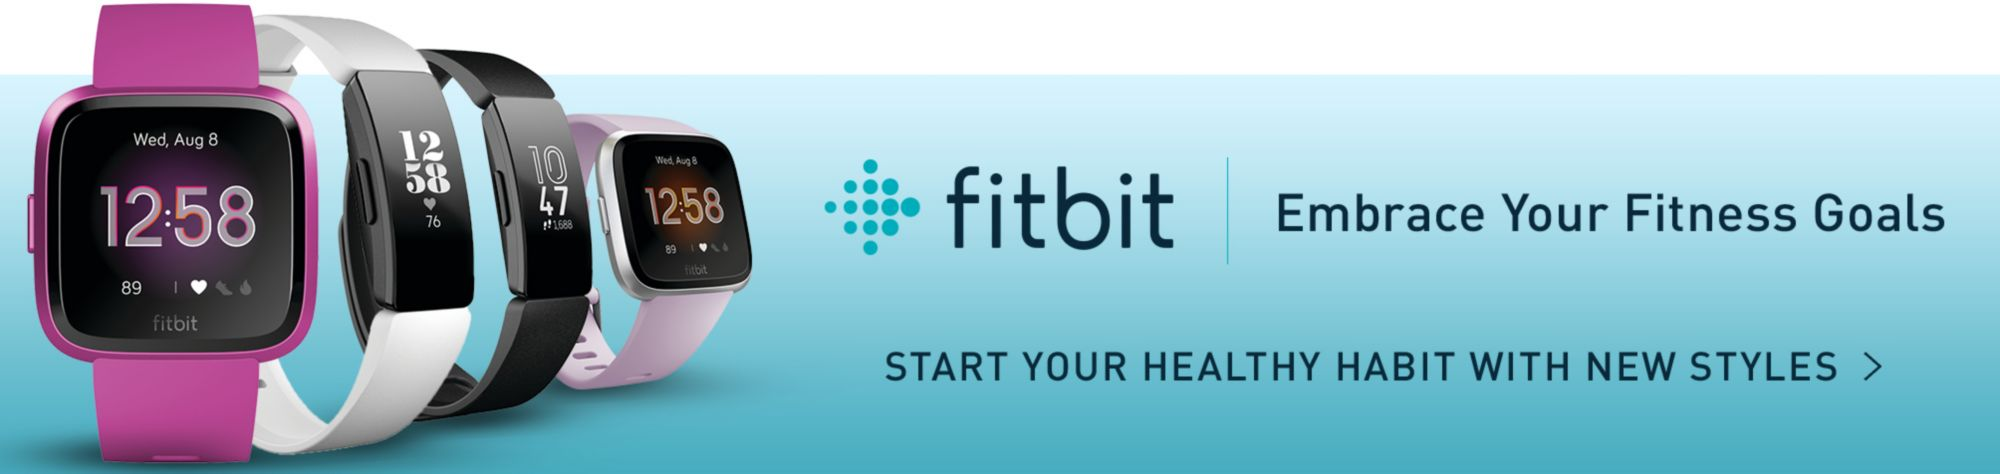 Fitbit Embrace Your Fitness Goals